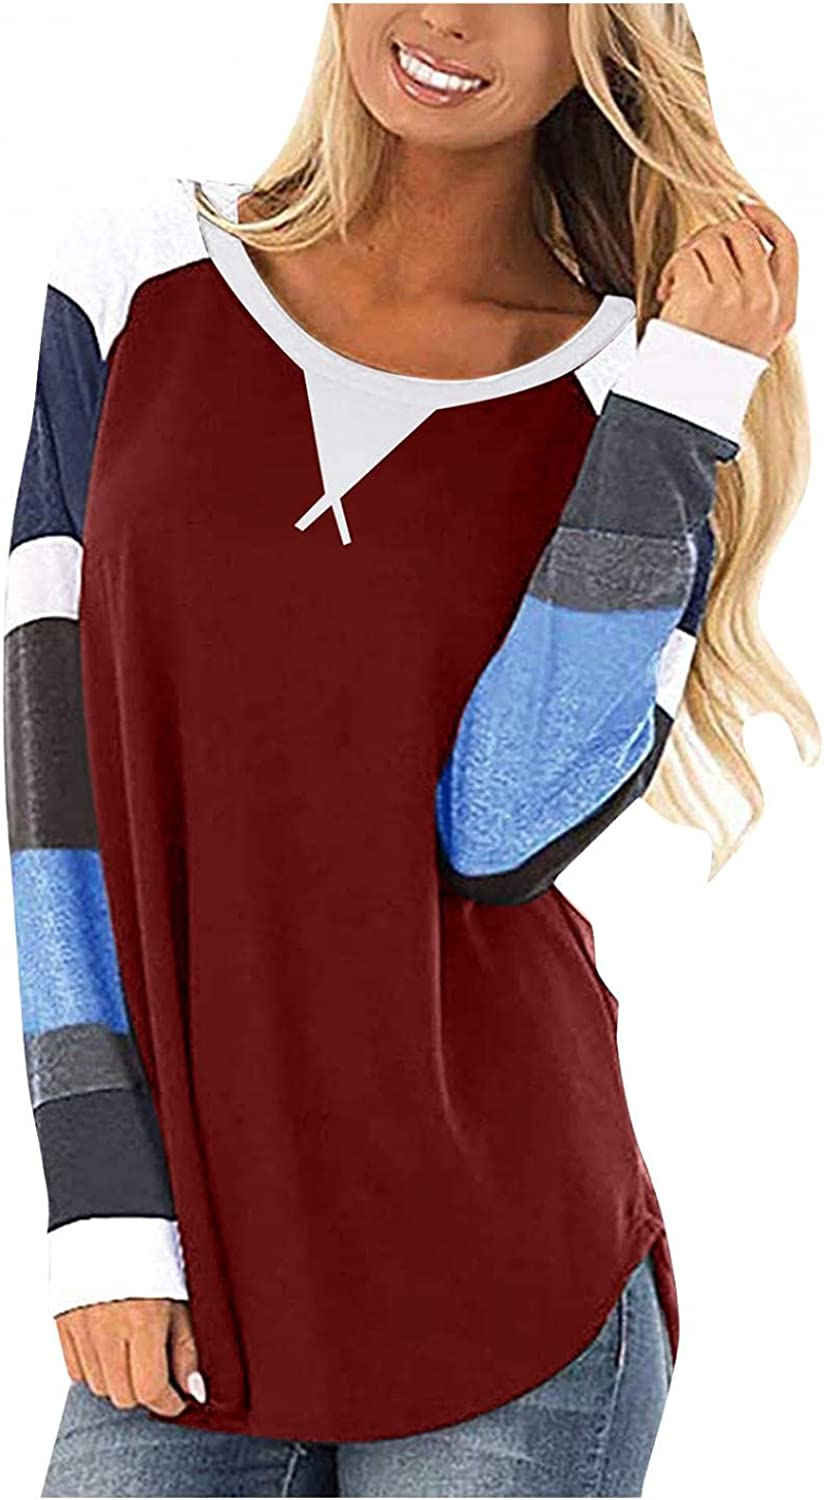 felwors Long Sleeve Shirts for Women, Women Tops Casual Long Sleeve Twist Knot Color Block Tunic Blouse Comfy T Shirts